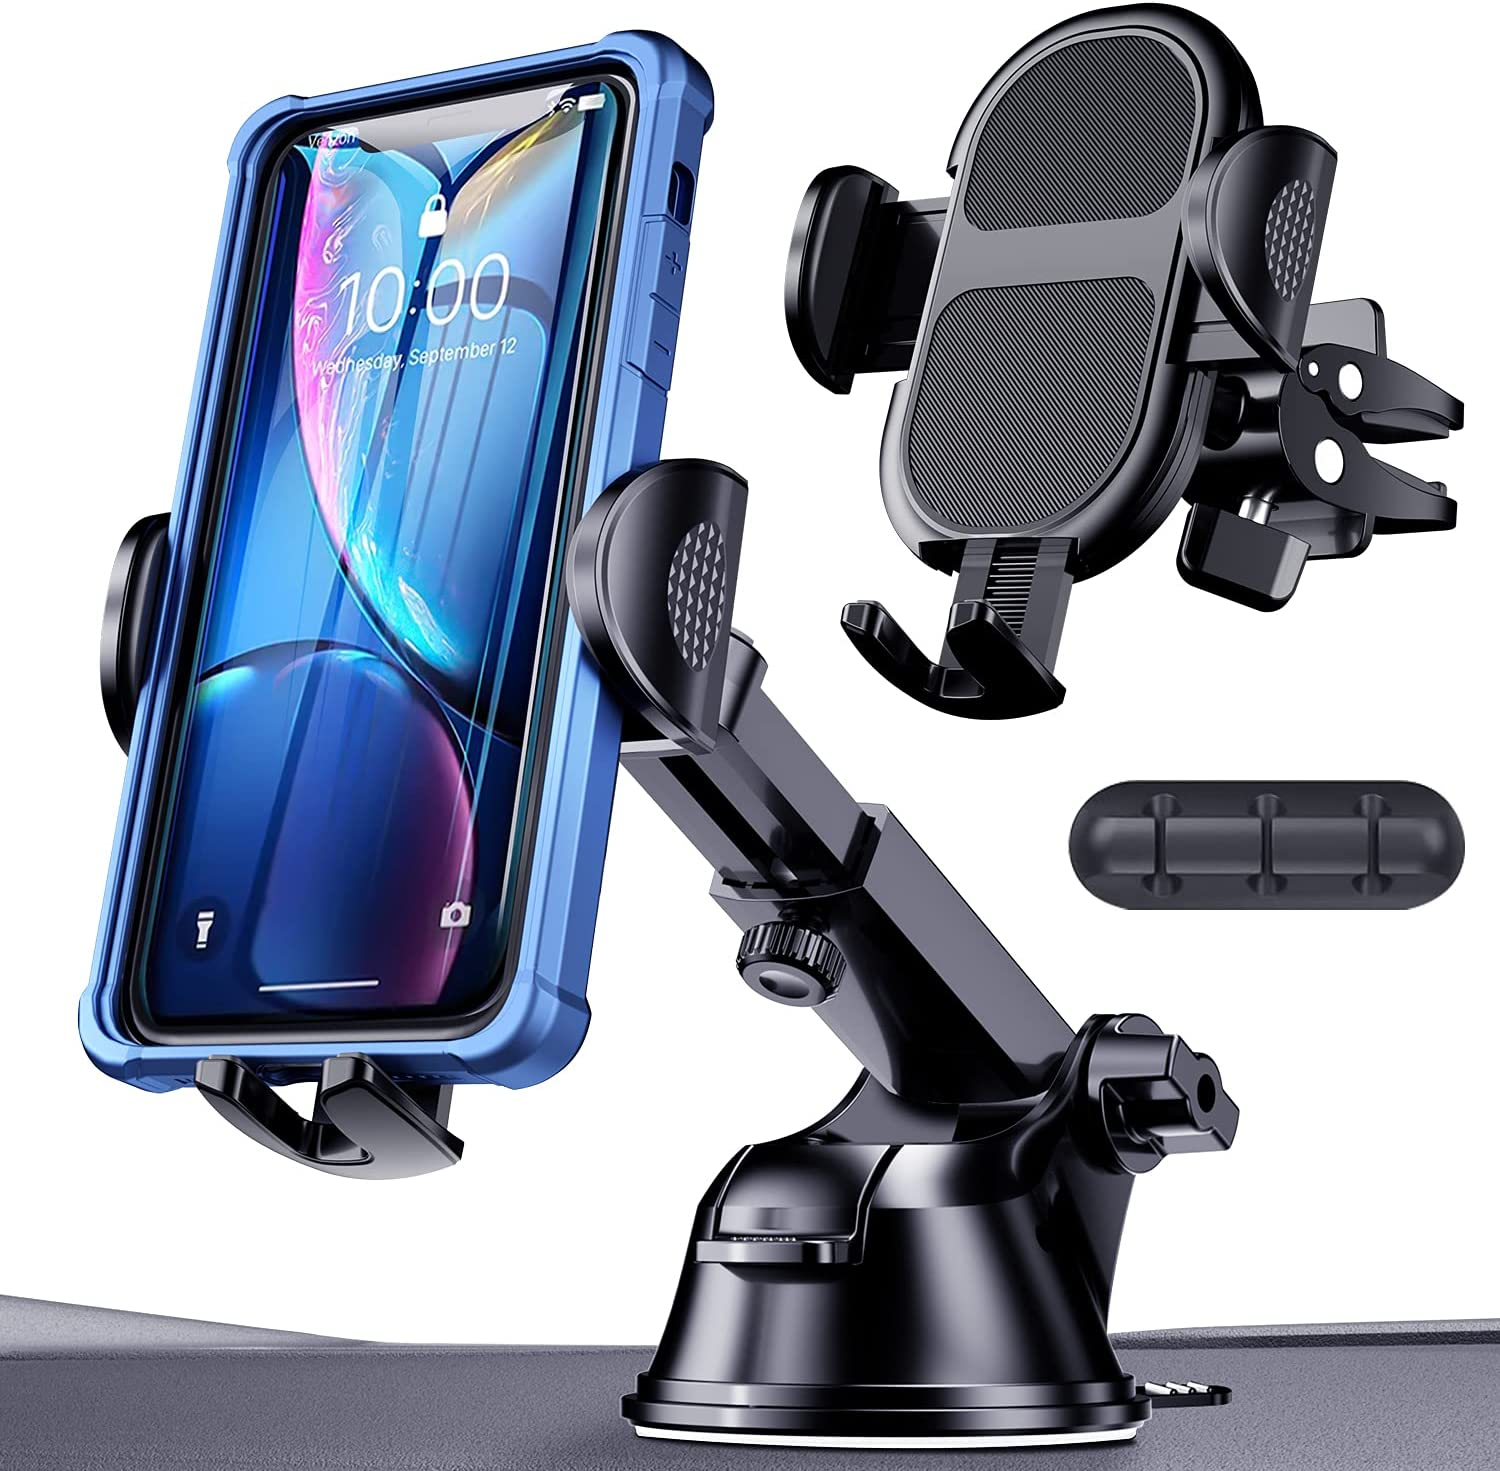 Car Phone Holder Mount, HanCenDa [Thick Case & Big Phone Friendly] 360°Rotation Phone Mount for Car Dashboard Windshield Air Vent Clip Cell Phone Holder Car Suitable for iPhone, Samsung All Smartphone